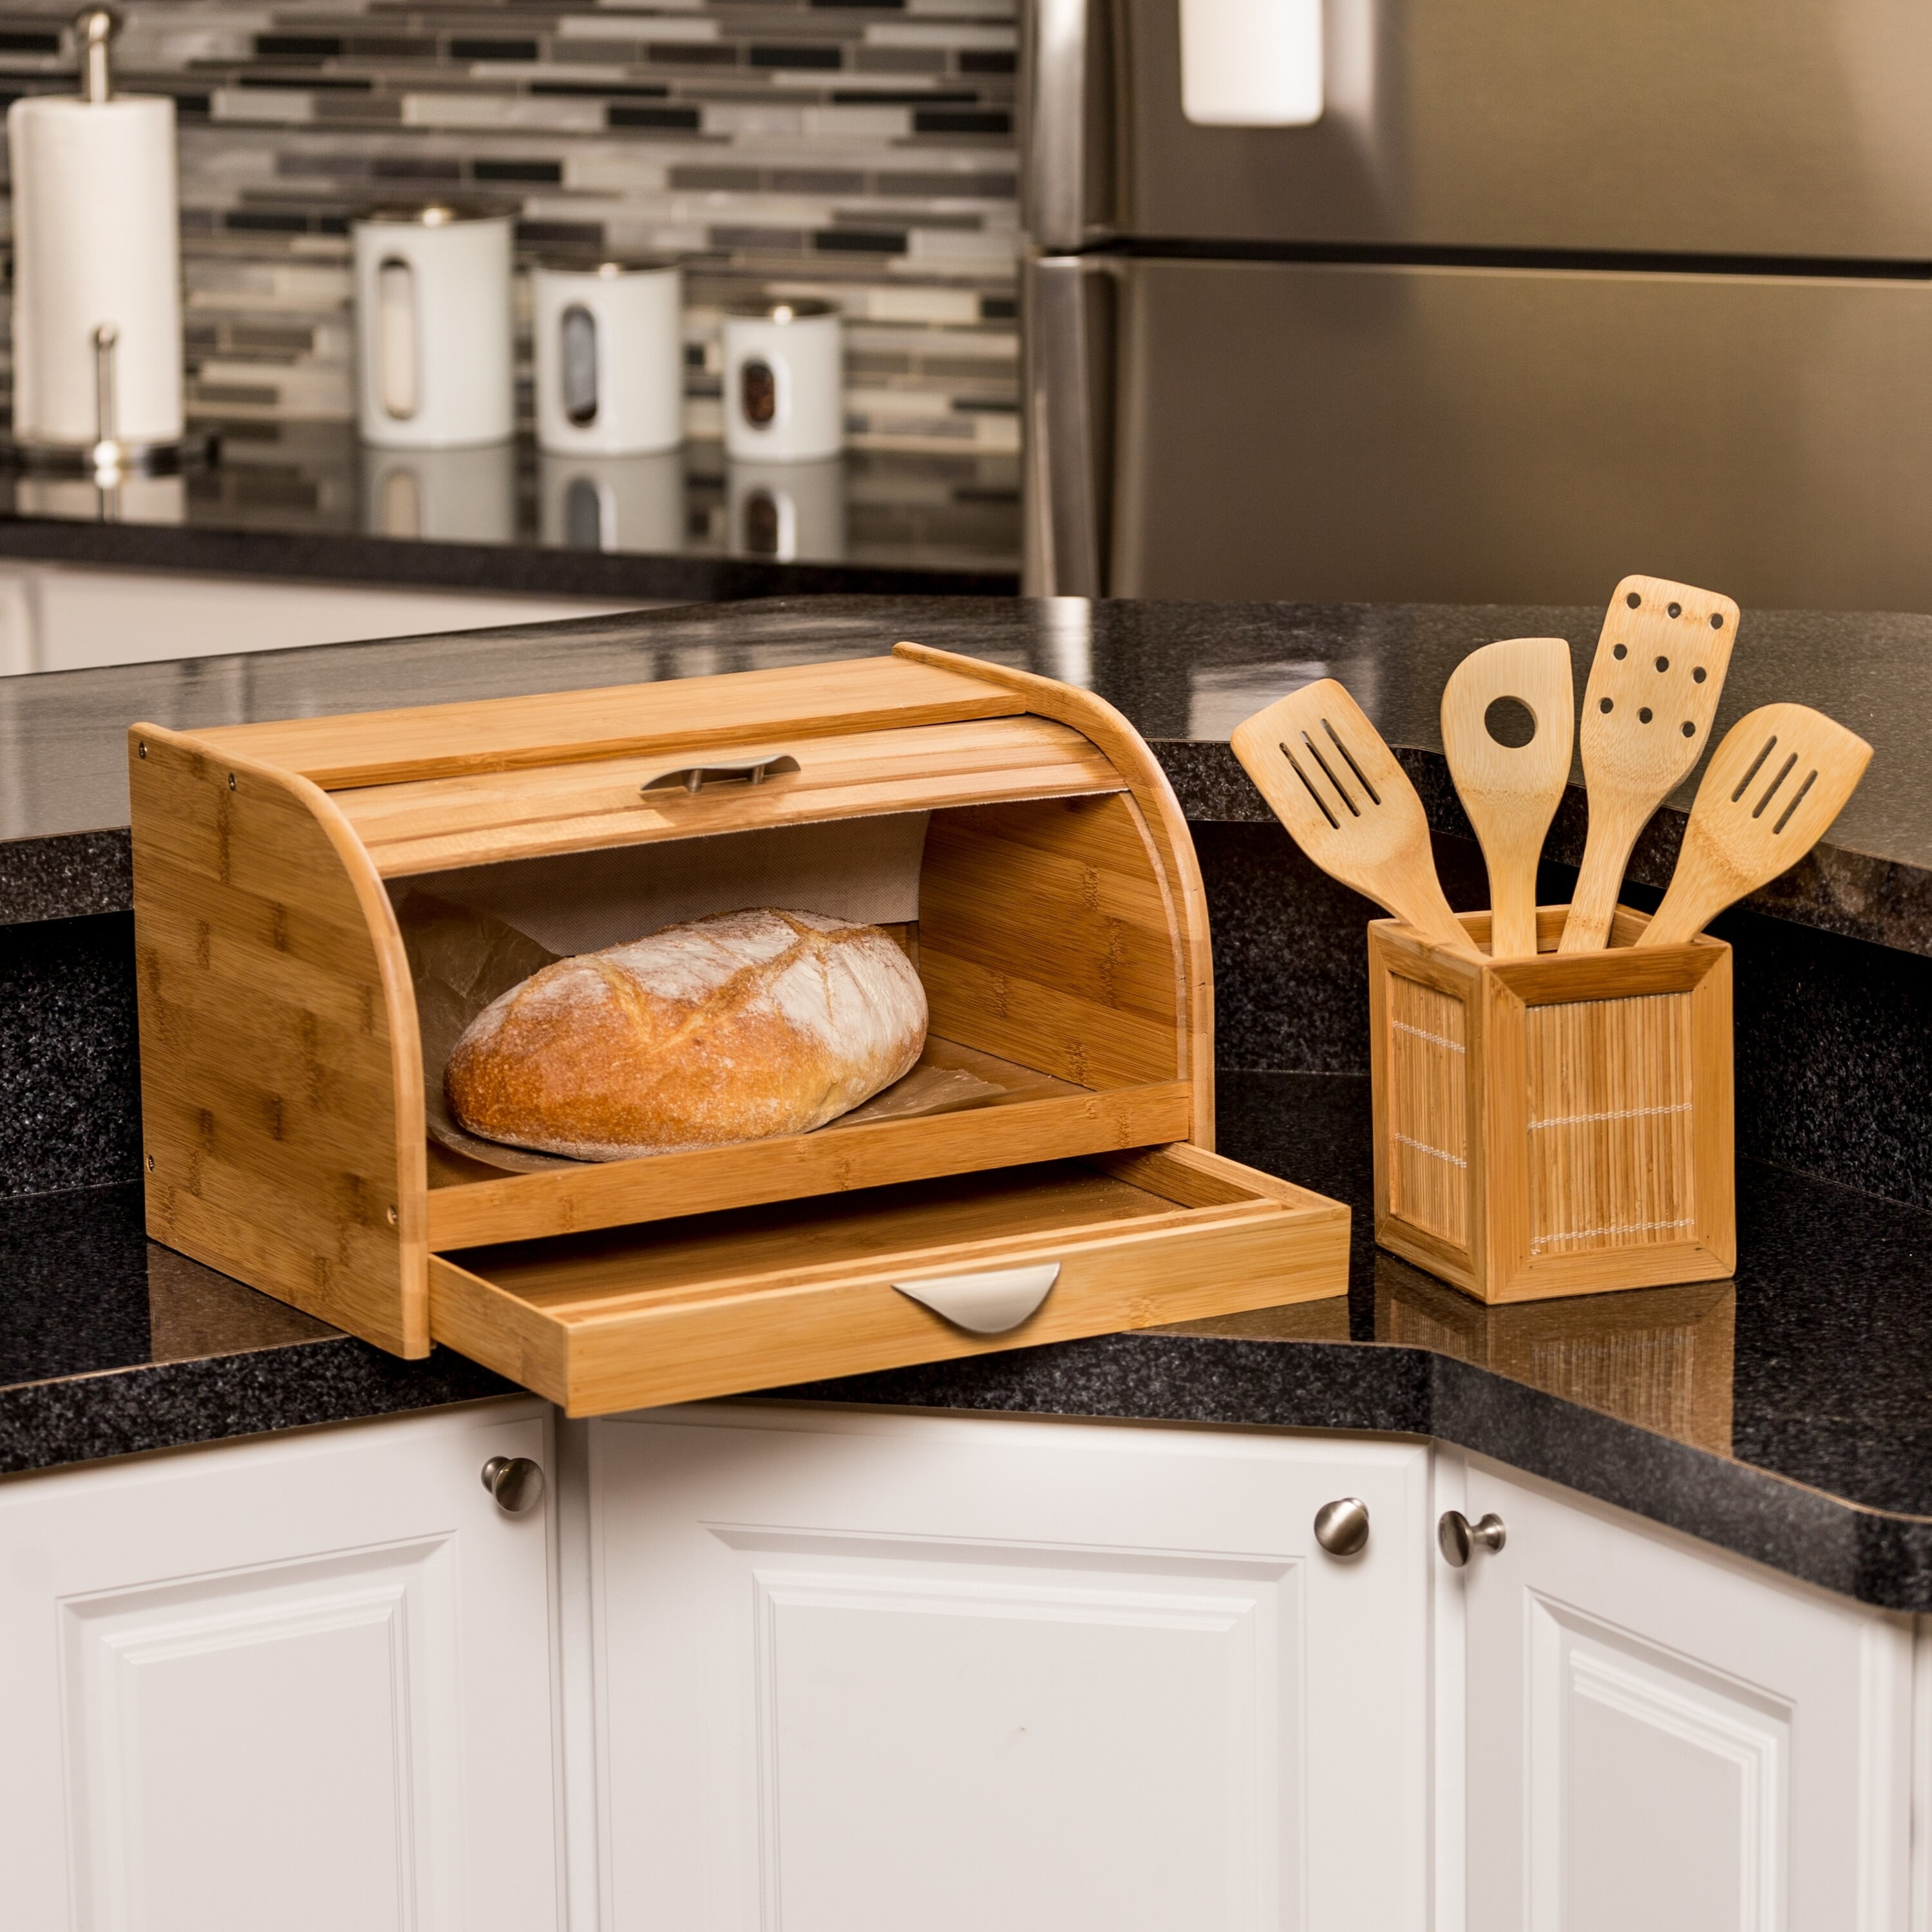 Wooden bread box with a slide up and down compartment and a small drawer underneath for storage